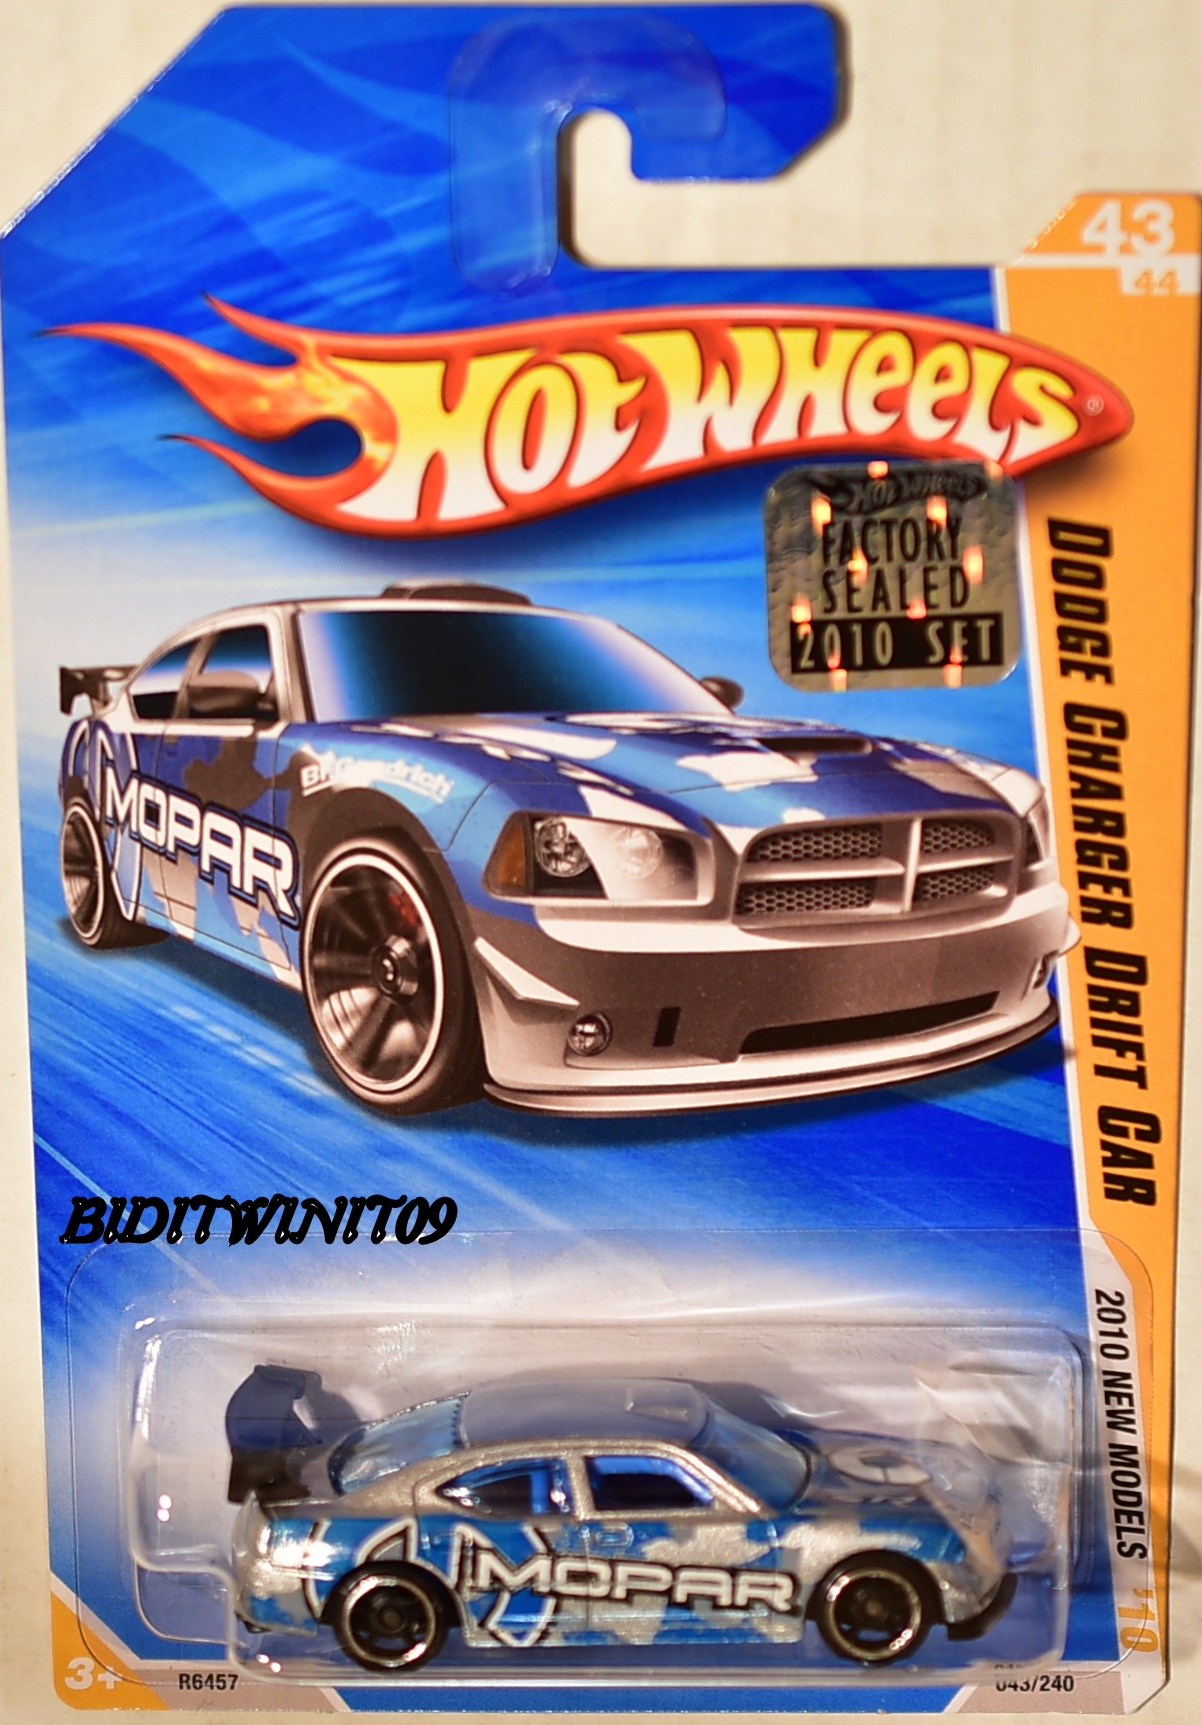 HOT WHEELS 2010 NEW MODELS DODGE CHARGER DRIFT CAR #43/44 FACTORY SEALED E+